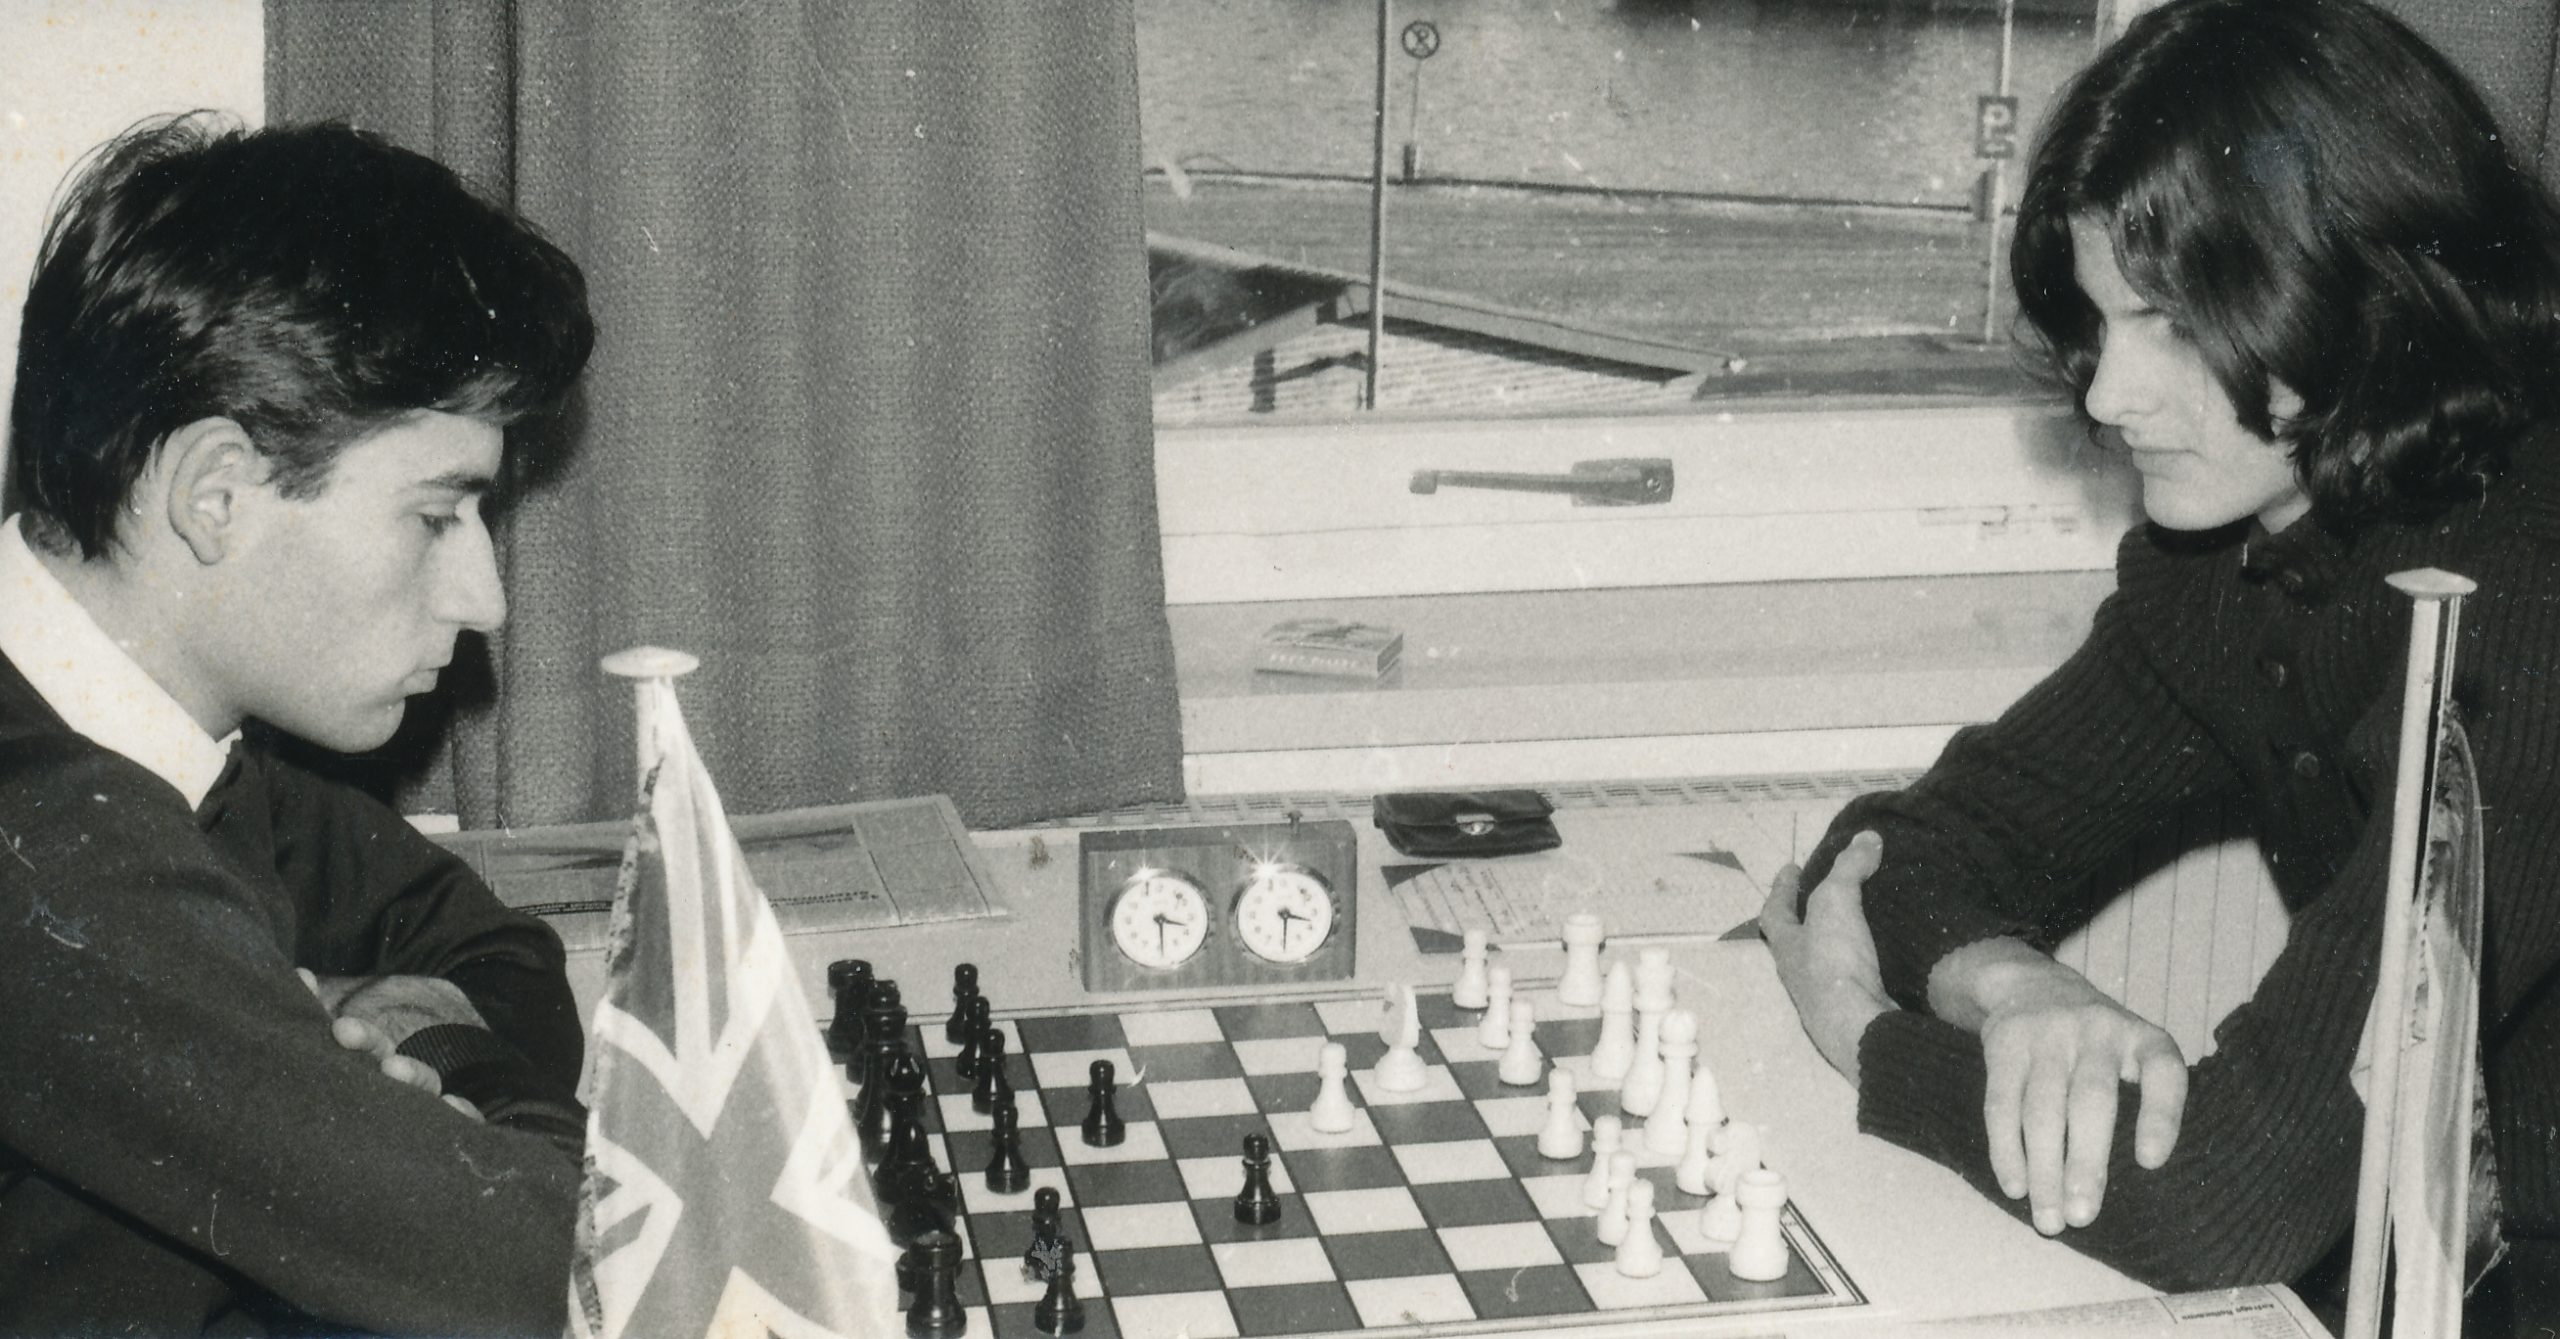 Bill plays his trusty Sicilian Taimanov against an unknown opponent